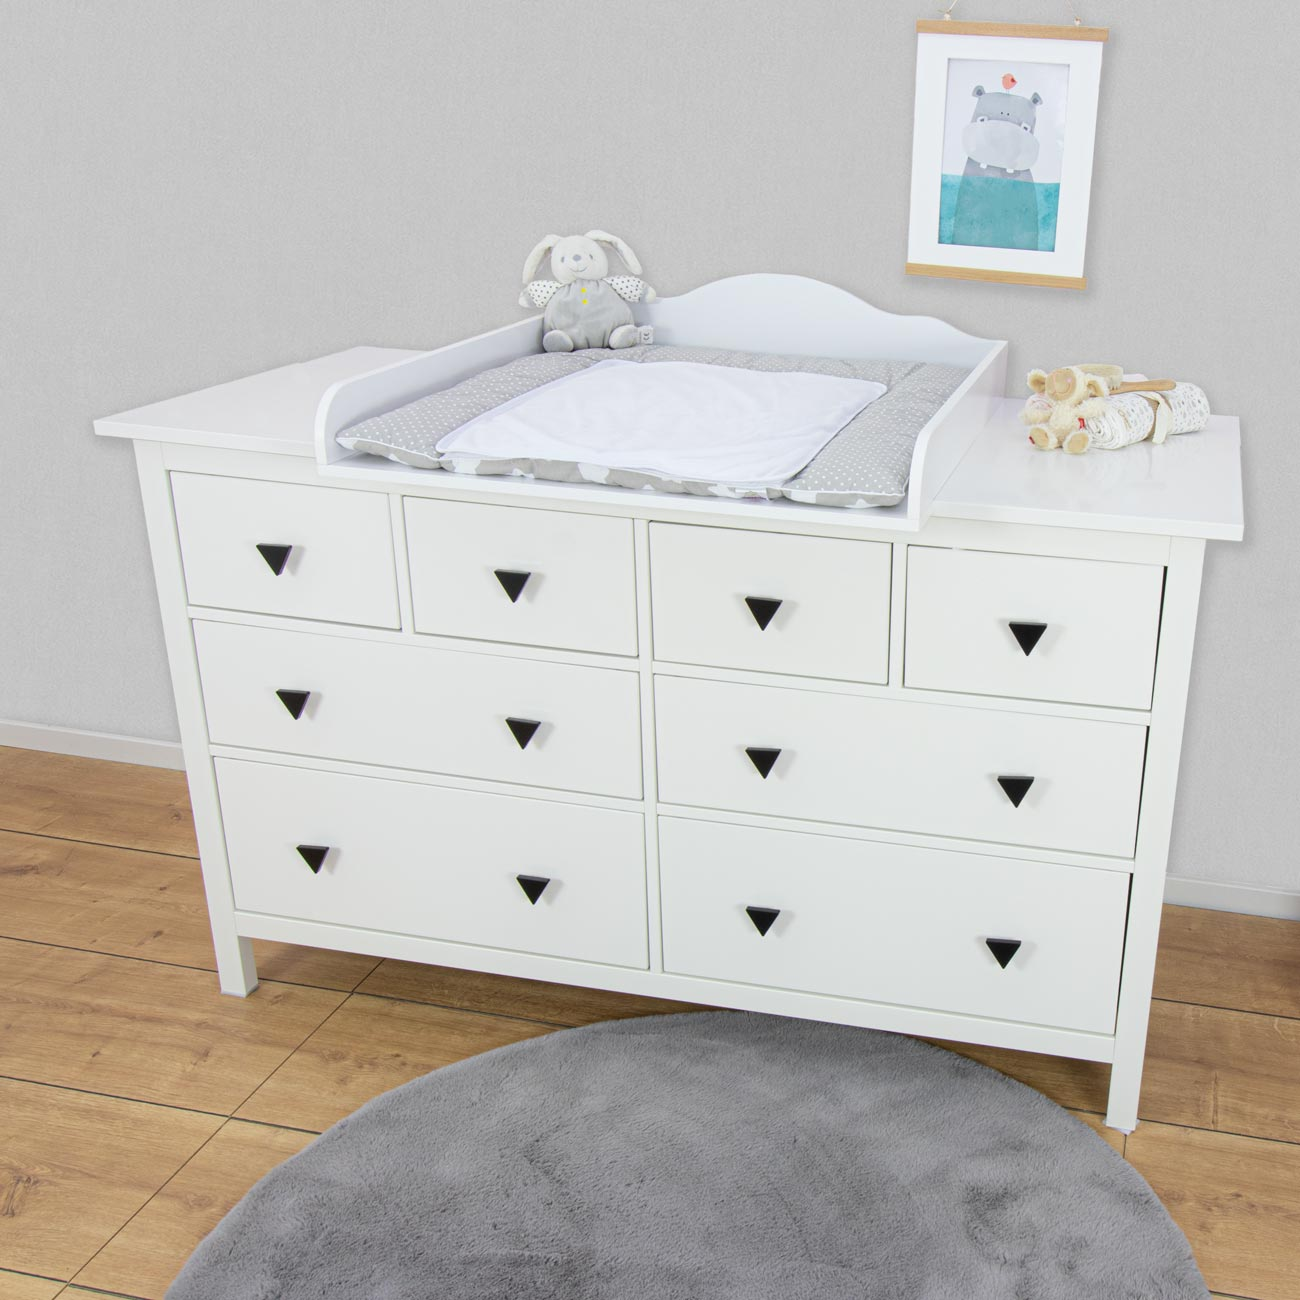 Changing top Emil with 159.5cm wide cover, white, IKEA Hemnes